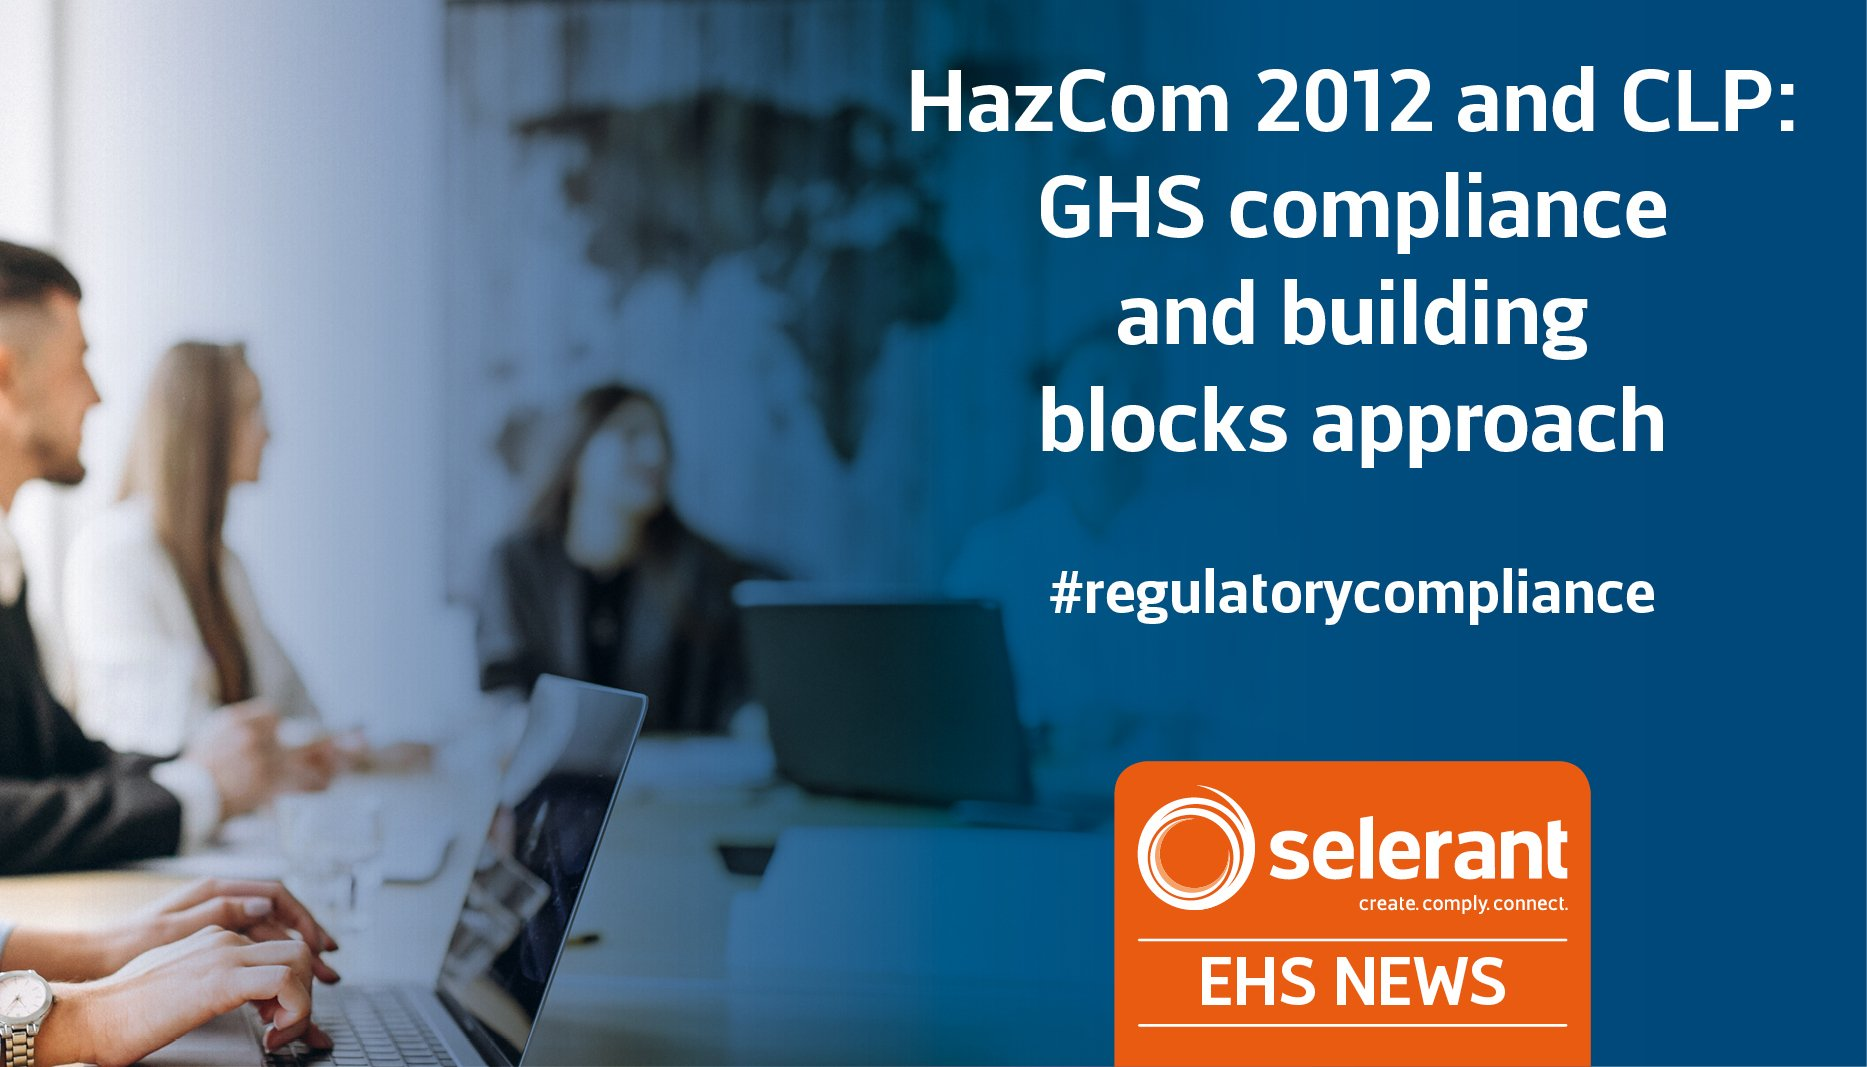 HazCom 2012 and CLP: GHS compliance and building blocks approach